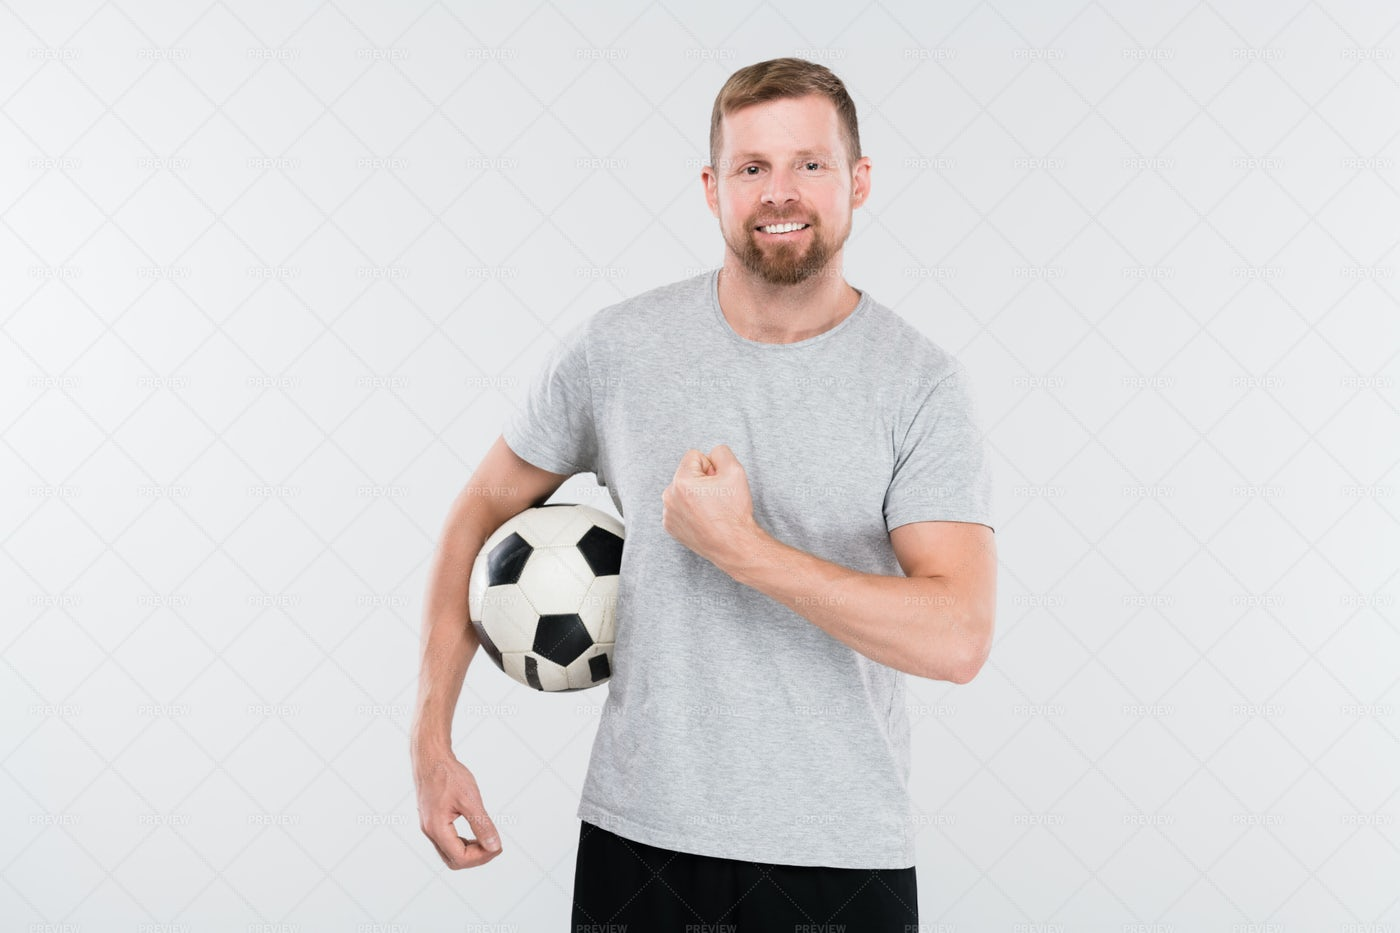 Young Successful Soccer Player In...: Stock Photos